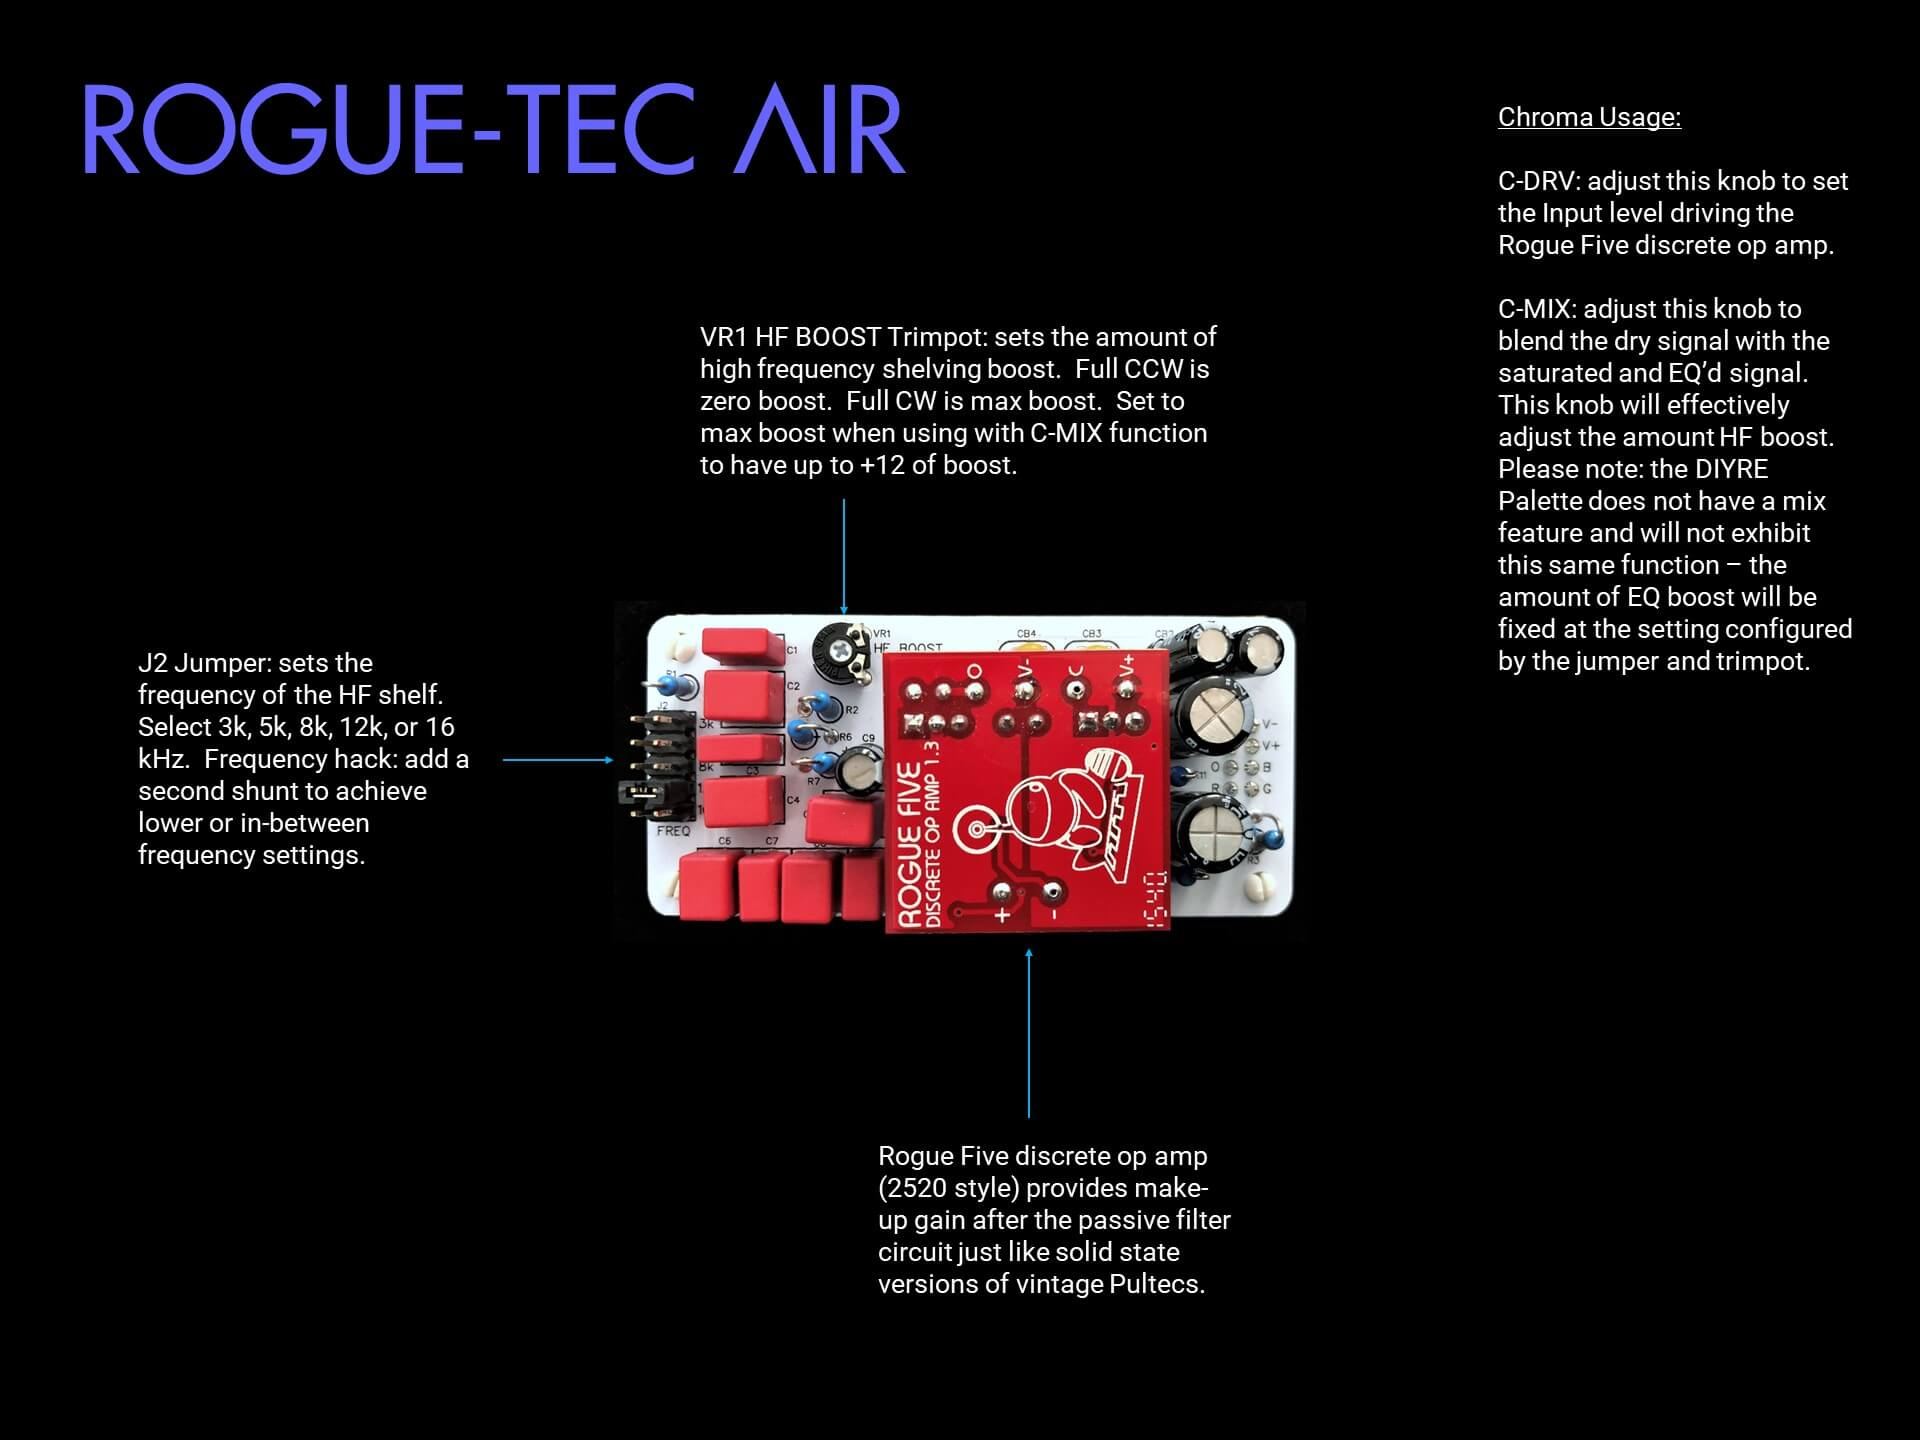 Rogue-Tec Air Manual